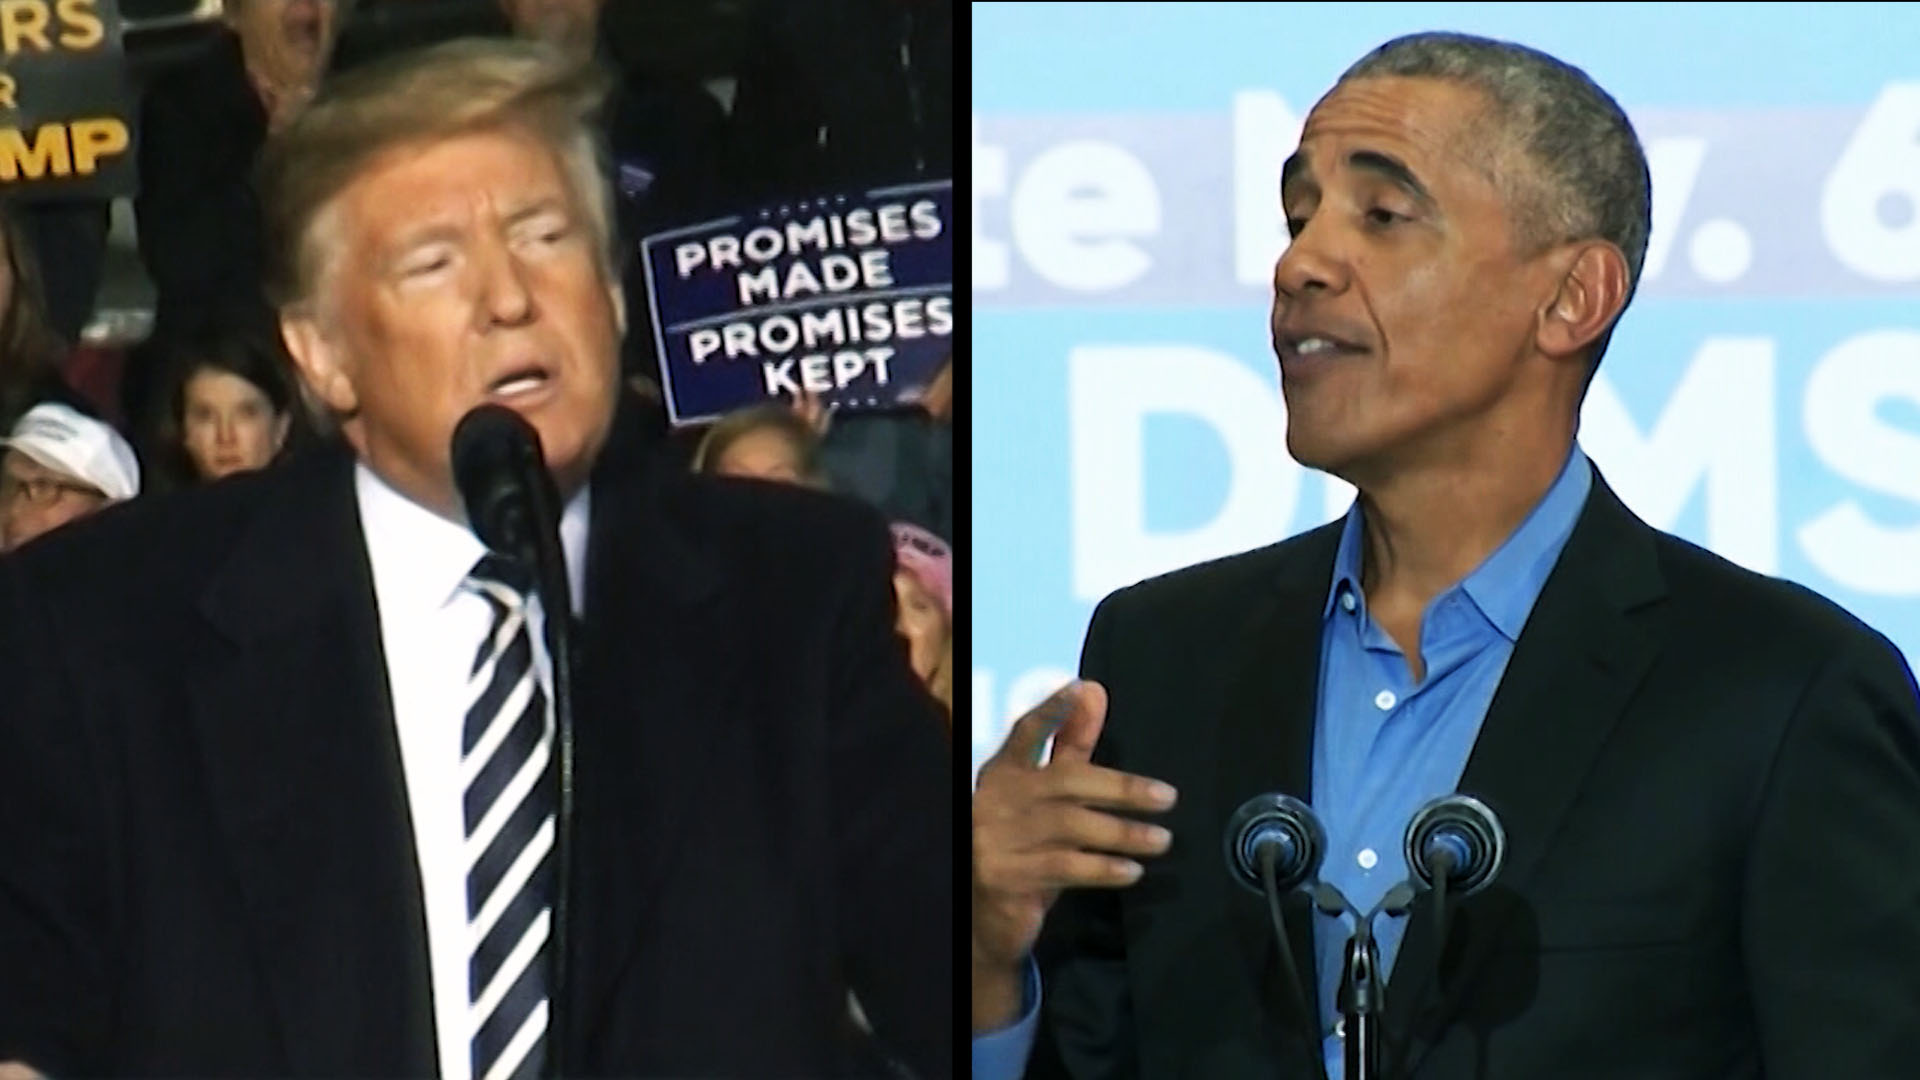 Trump And Obama Face Off Ahead Of Midterms Cnn Video